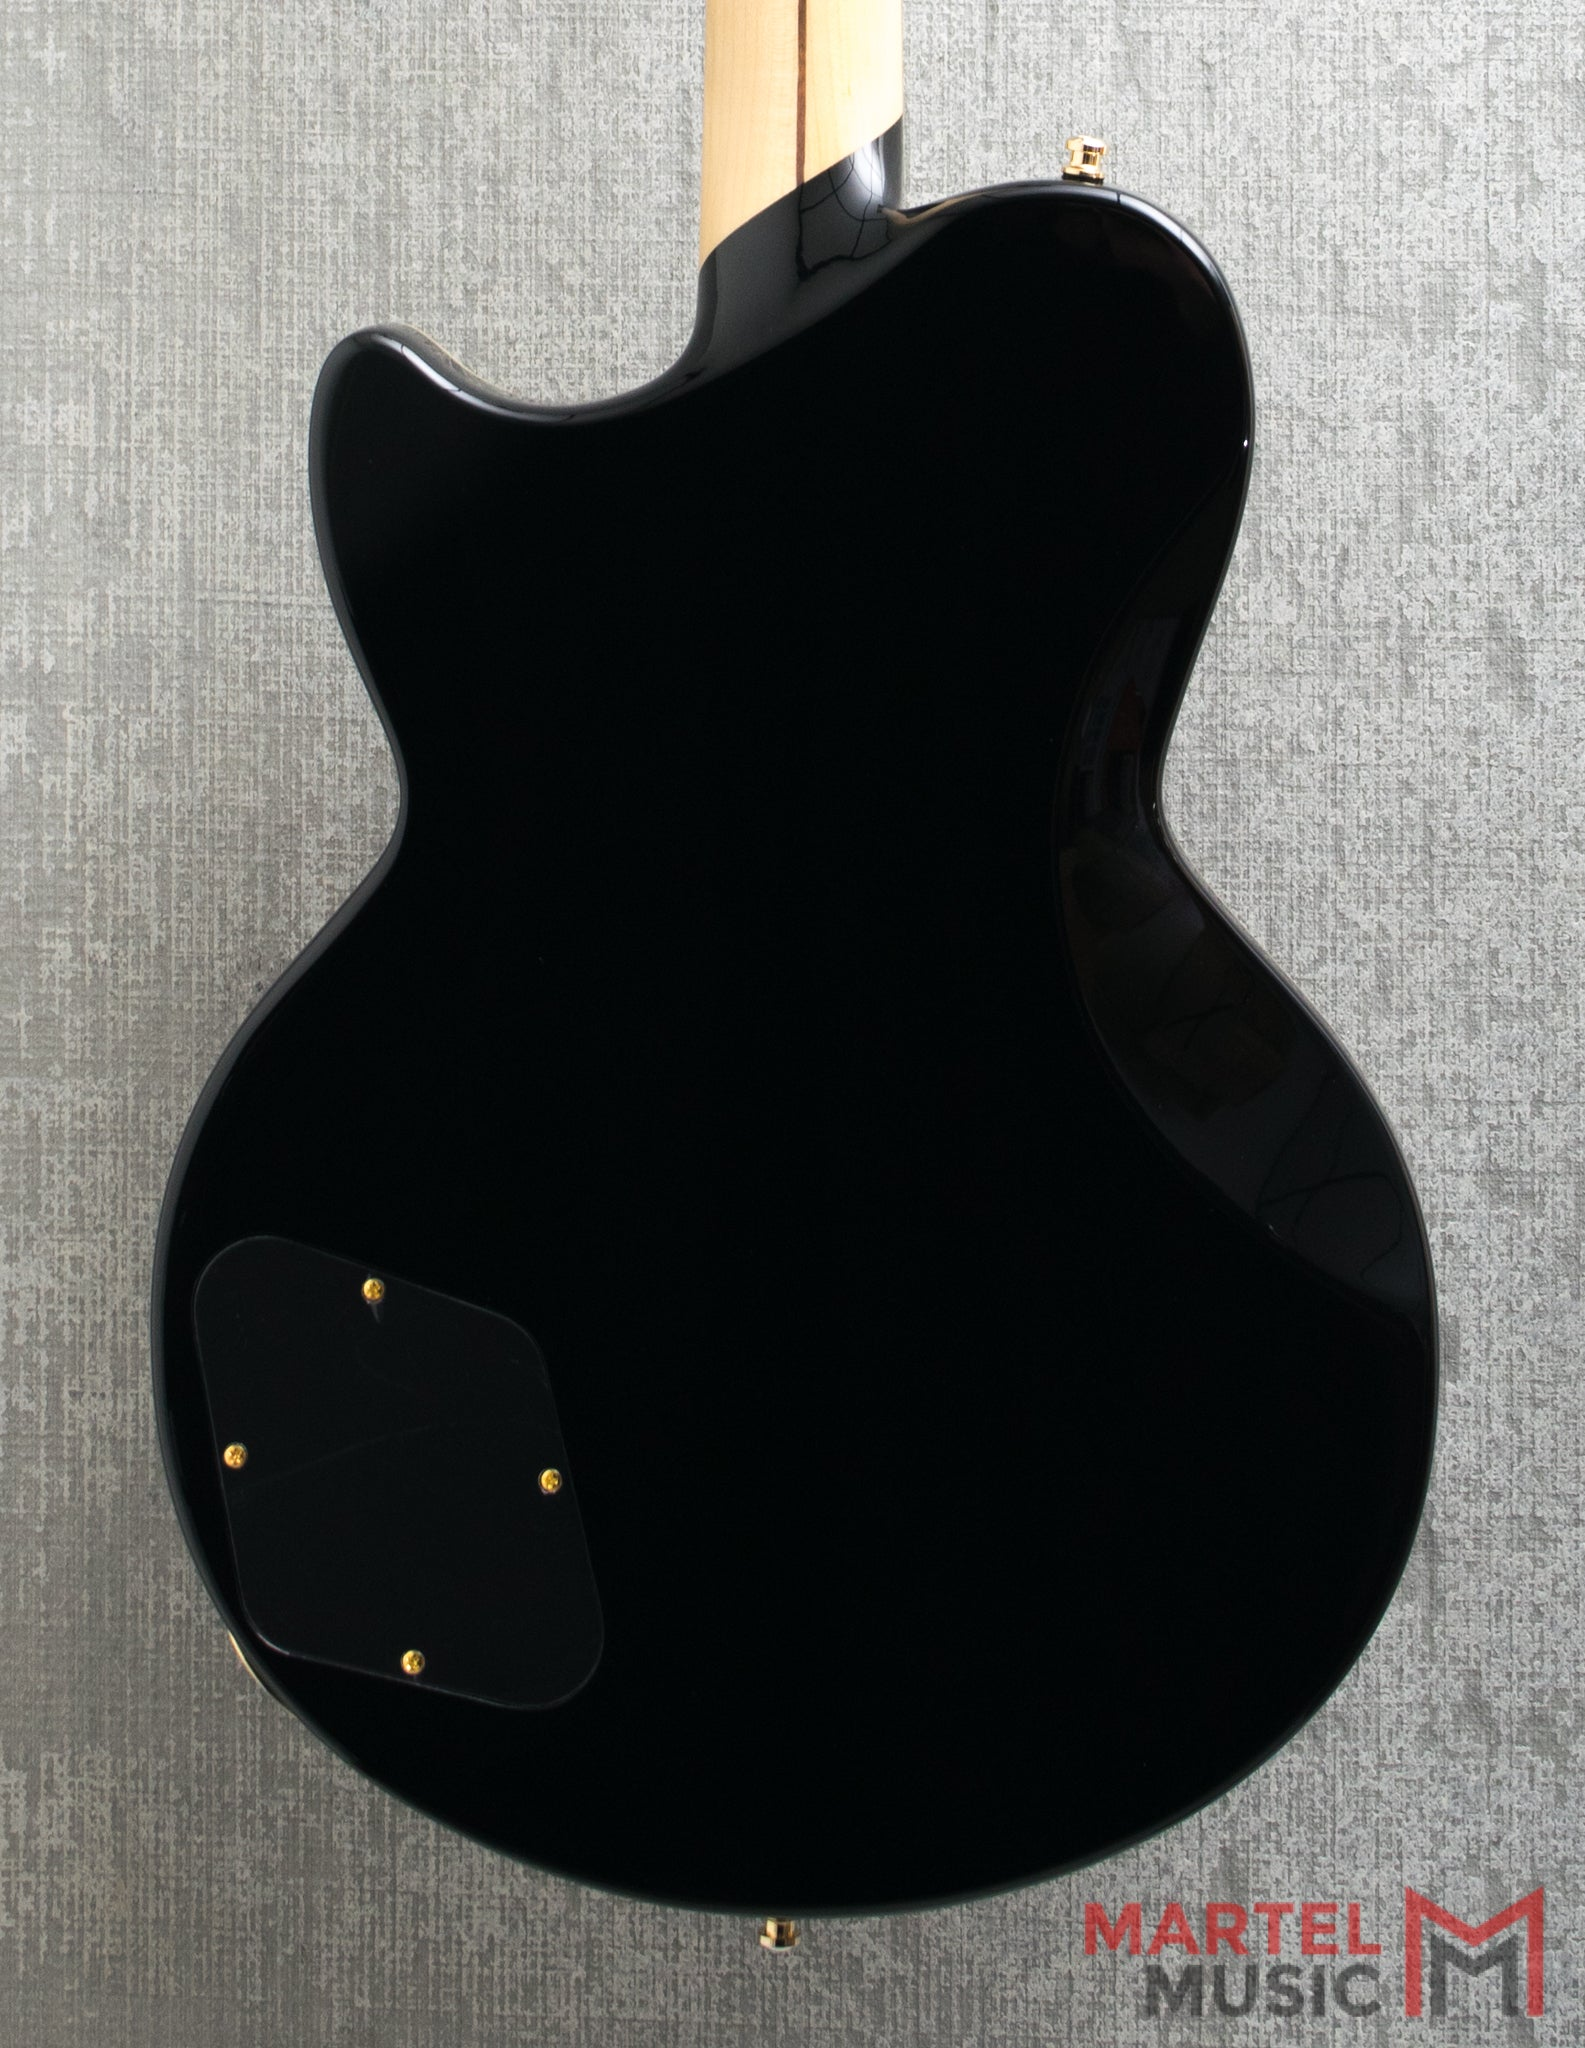 D'Angelico Atlantic Deluxe in Black